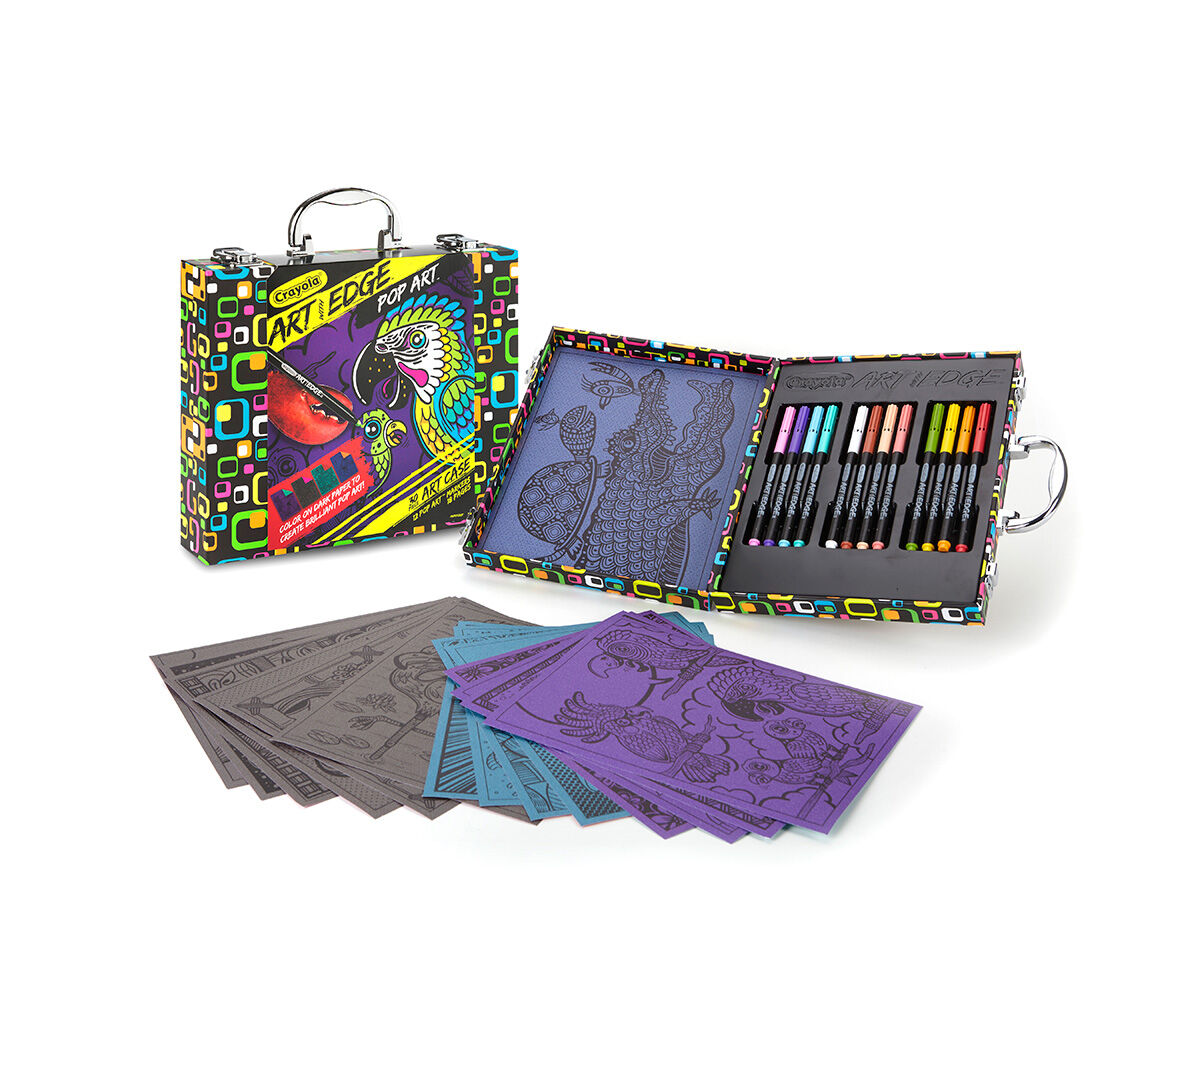 <p>With 18 pages of unique beach-themed line art, 12 Pop Art Markers, and a sturdy storage case with handle, the Crayola Art with Edge Pop Art Case Tropical Pop! contains everything you need to make fun and funky art. Use your imagination and artistic instincts to produce wild, exciting results.</p>